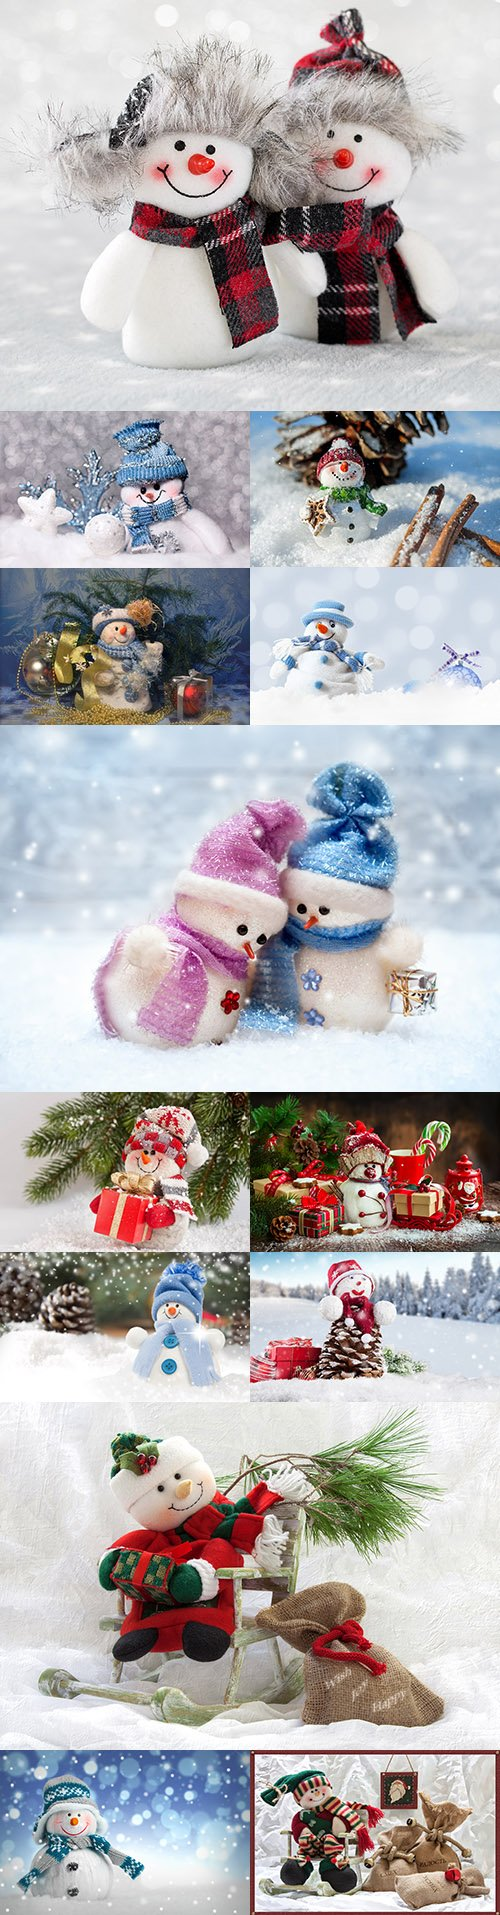 Happy Christmas funny snowman decorative composition